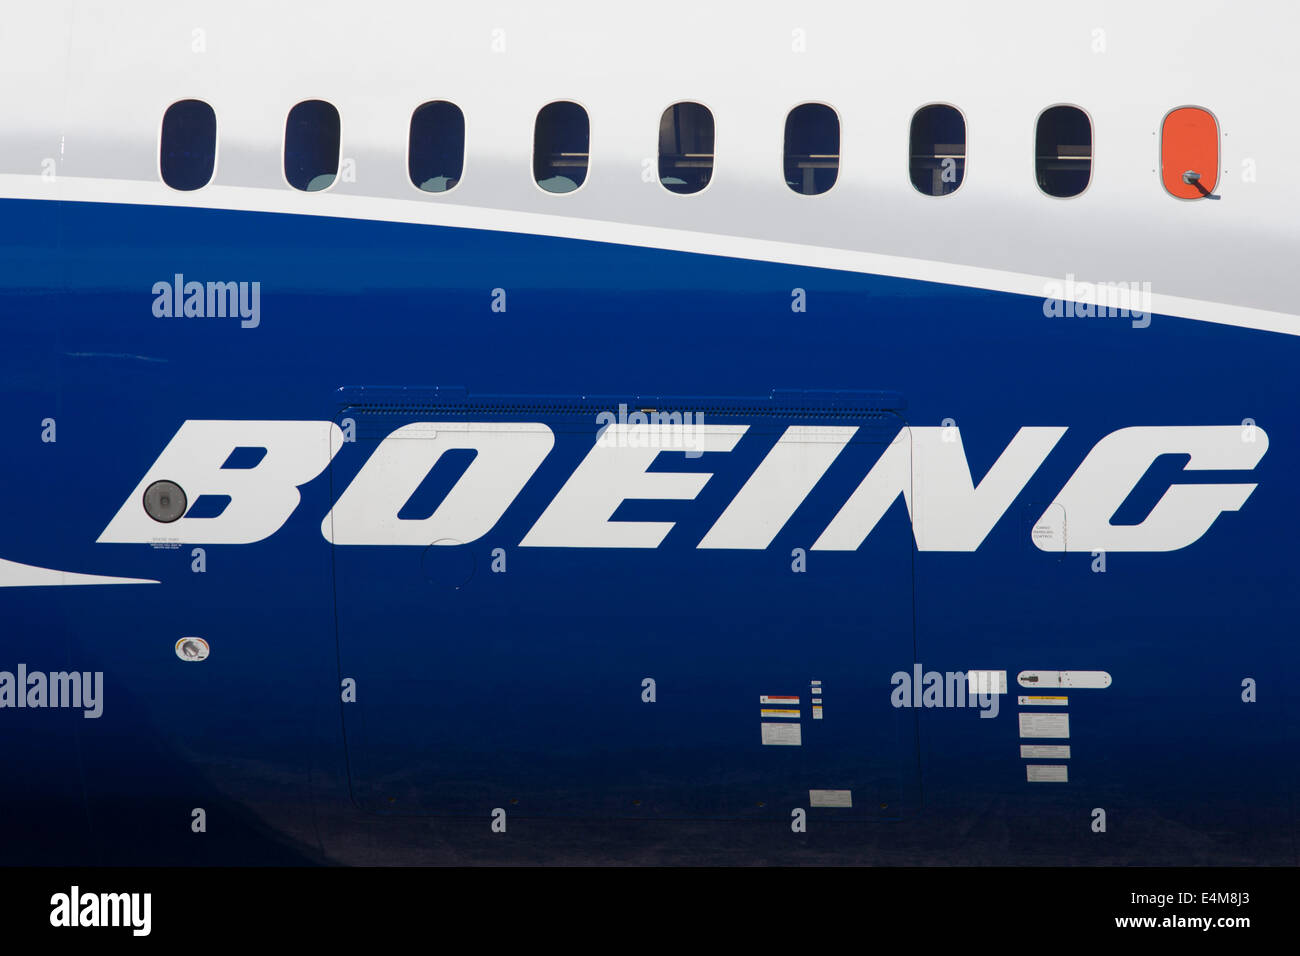 Detail of a Boeing 787-9 Dreamliner jet airliner fuselage at the Farnborough Air Show, England. The Boeing 787-9 - Stock Image